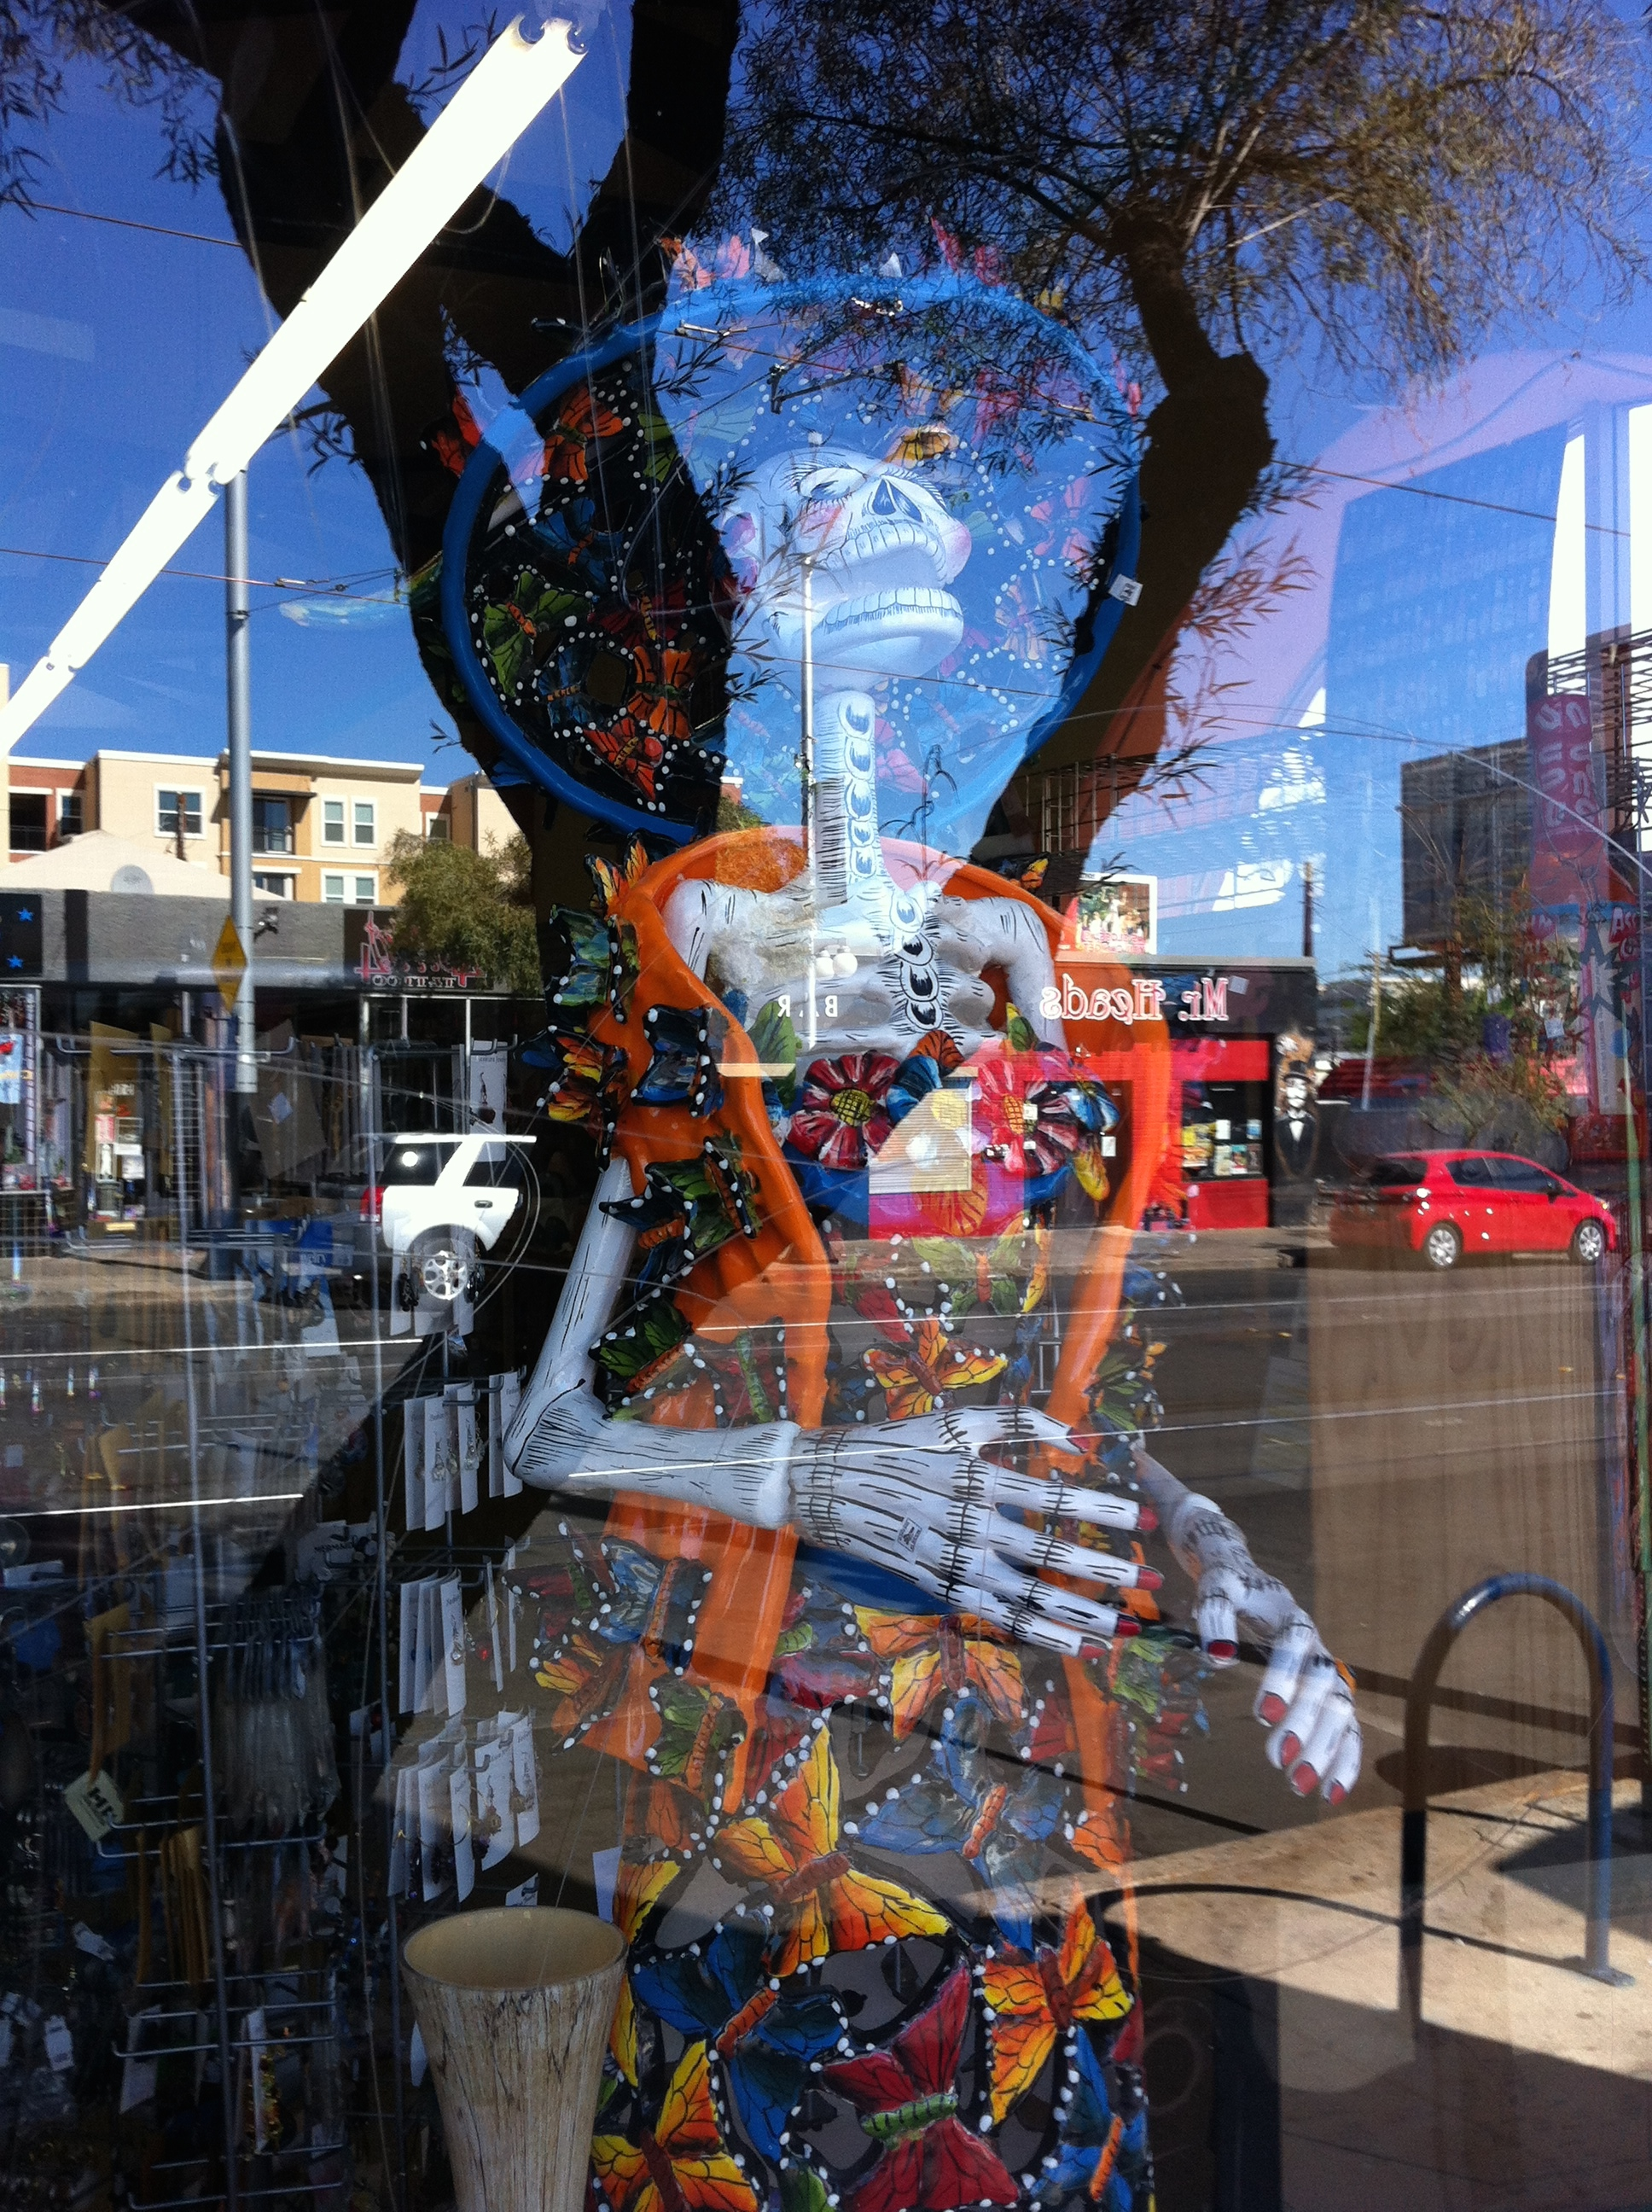 Butterflies & Skeletons? Tucson has a rich high and low brow culture.